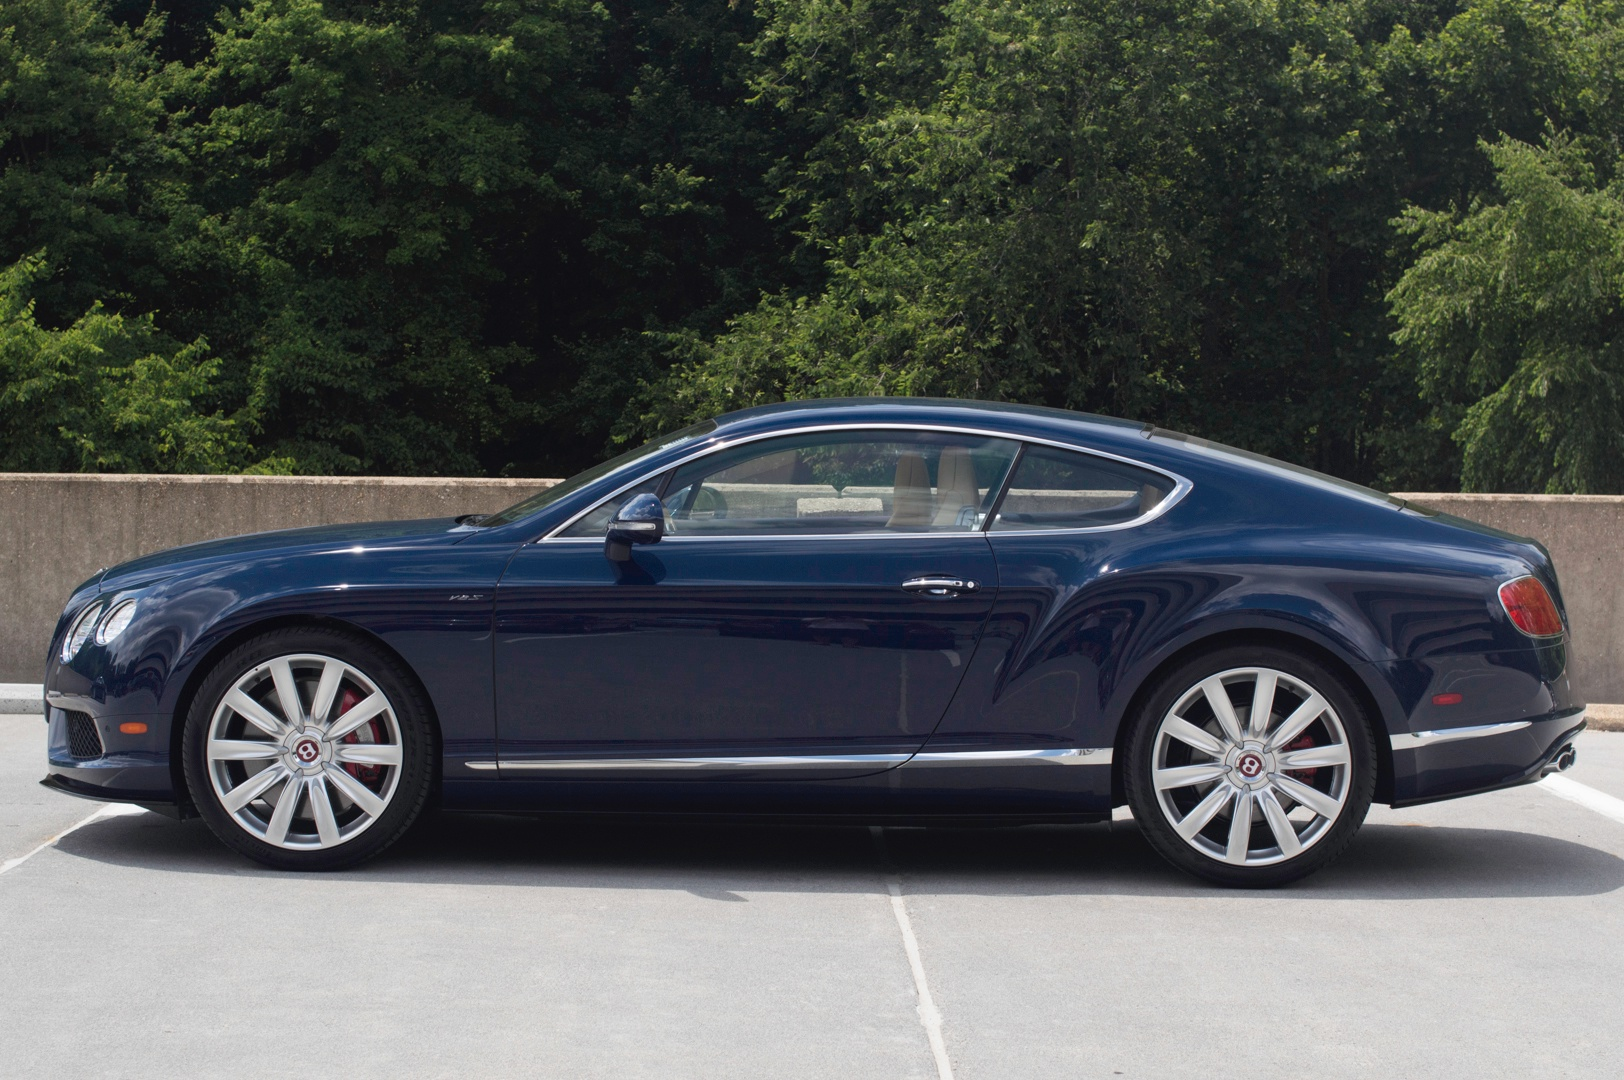 2014 bentley continental gt v8 s stock 4nc096190 for sale near vienna va va bentley dealer. Black Bedroom Furniture Sets. Home Design Ideas